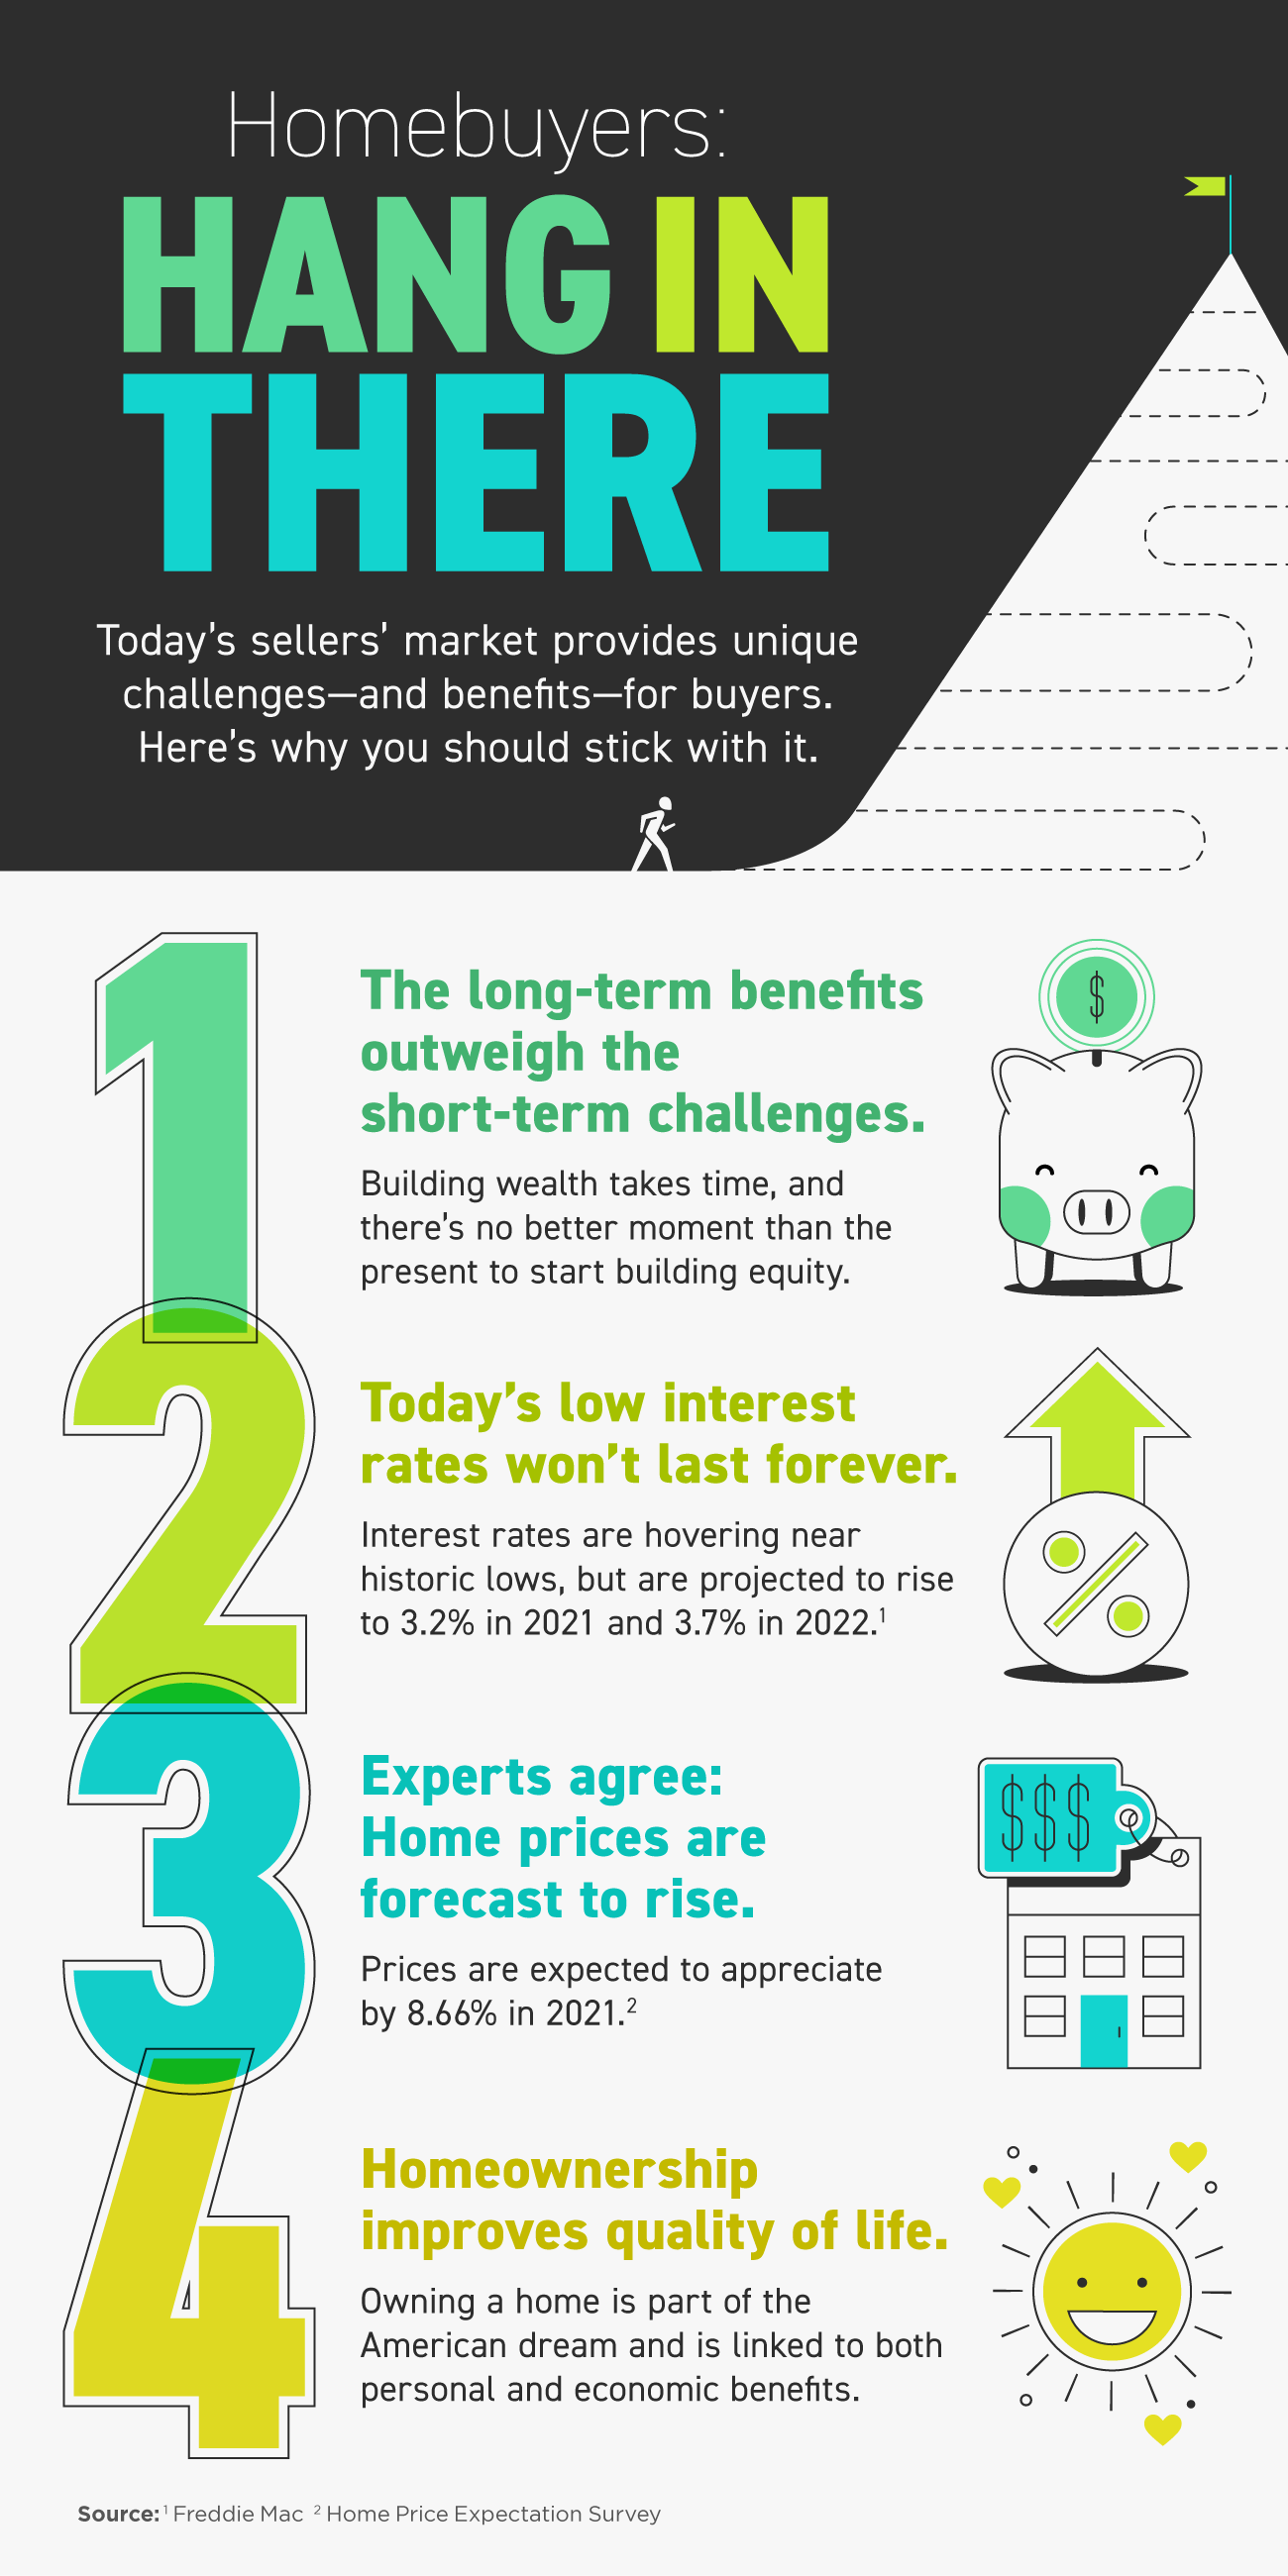 Homebuyers: Hang in There [INFOGRAPHIC] | Simplifying The Market